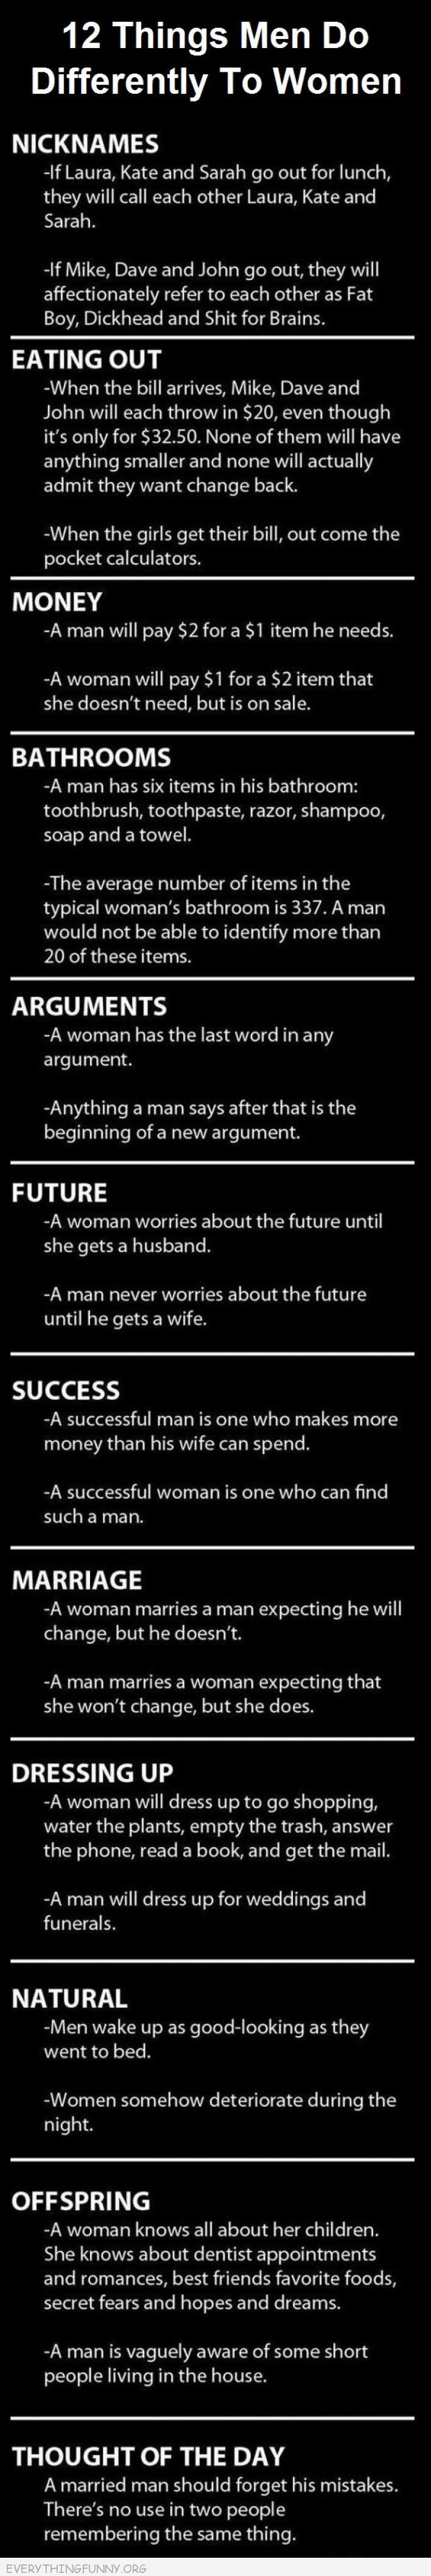 funny quotes 12 Things Men Do Differently Then Women